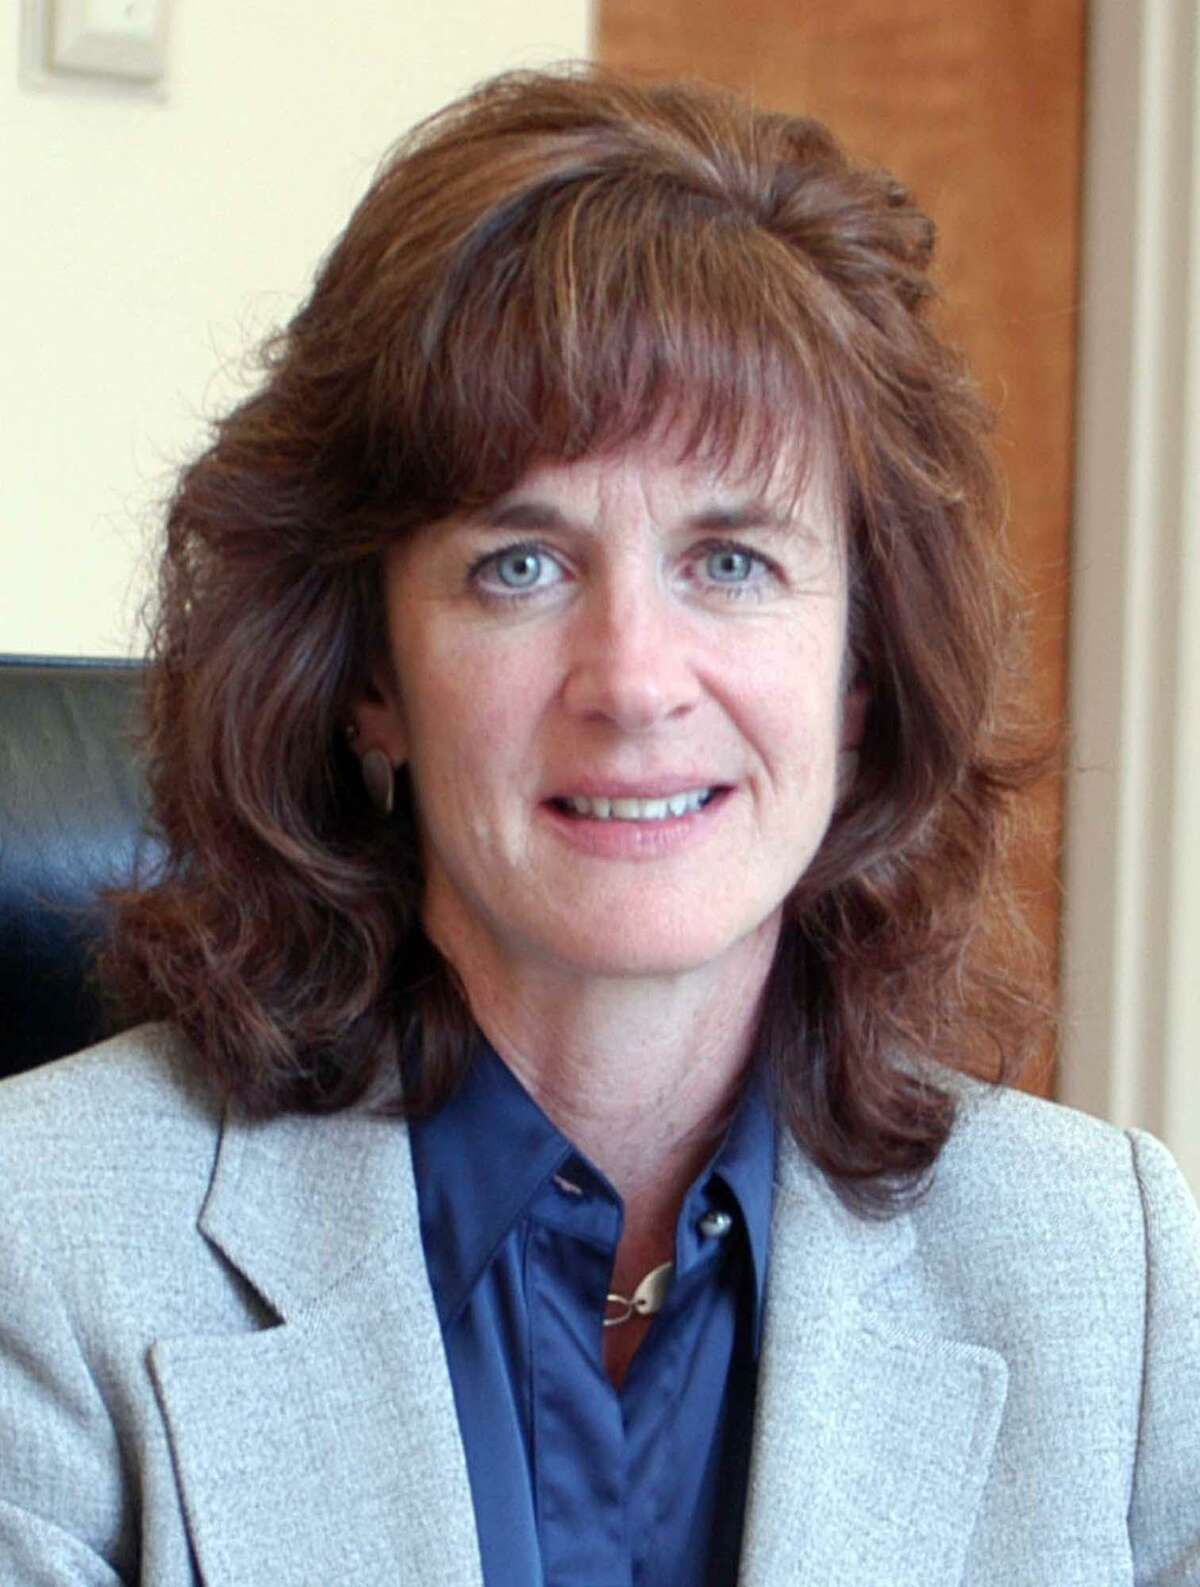 Colleen Murphy, executive director of the Freedom of Information Commission